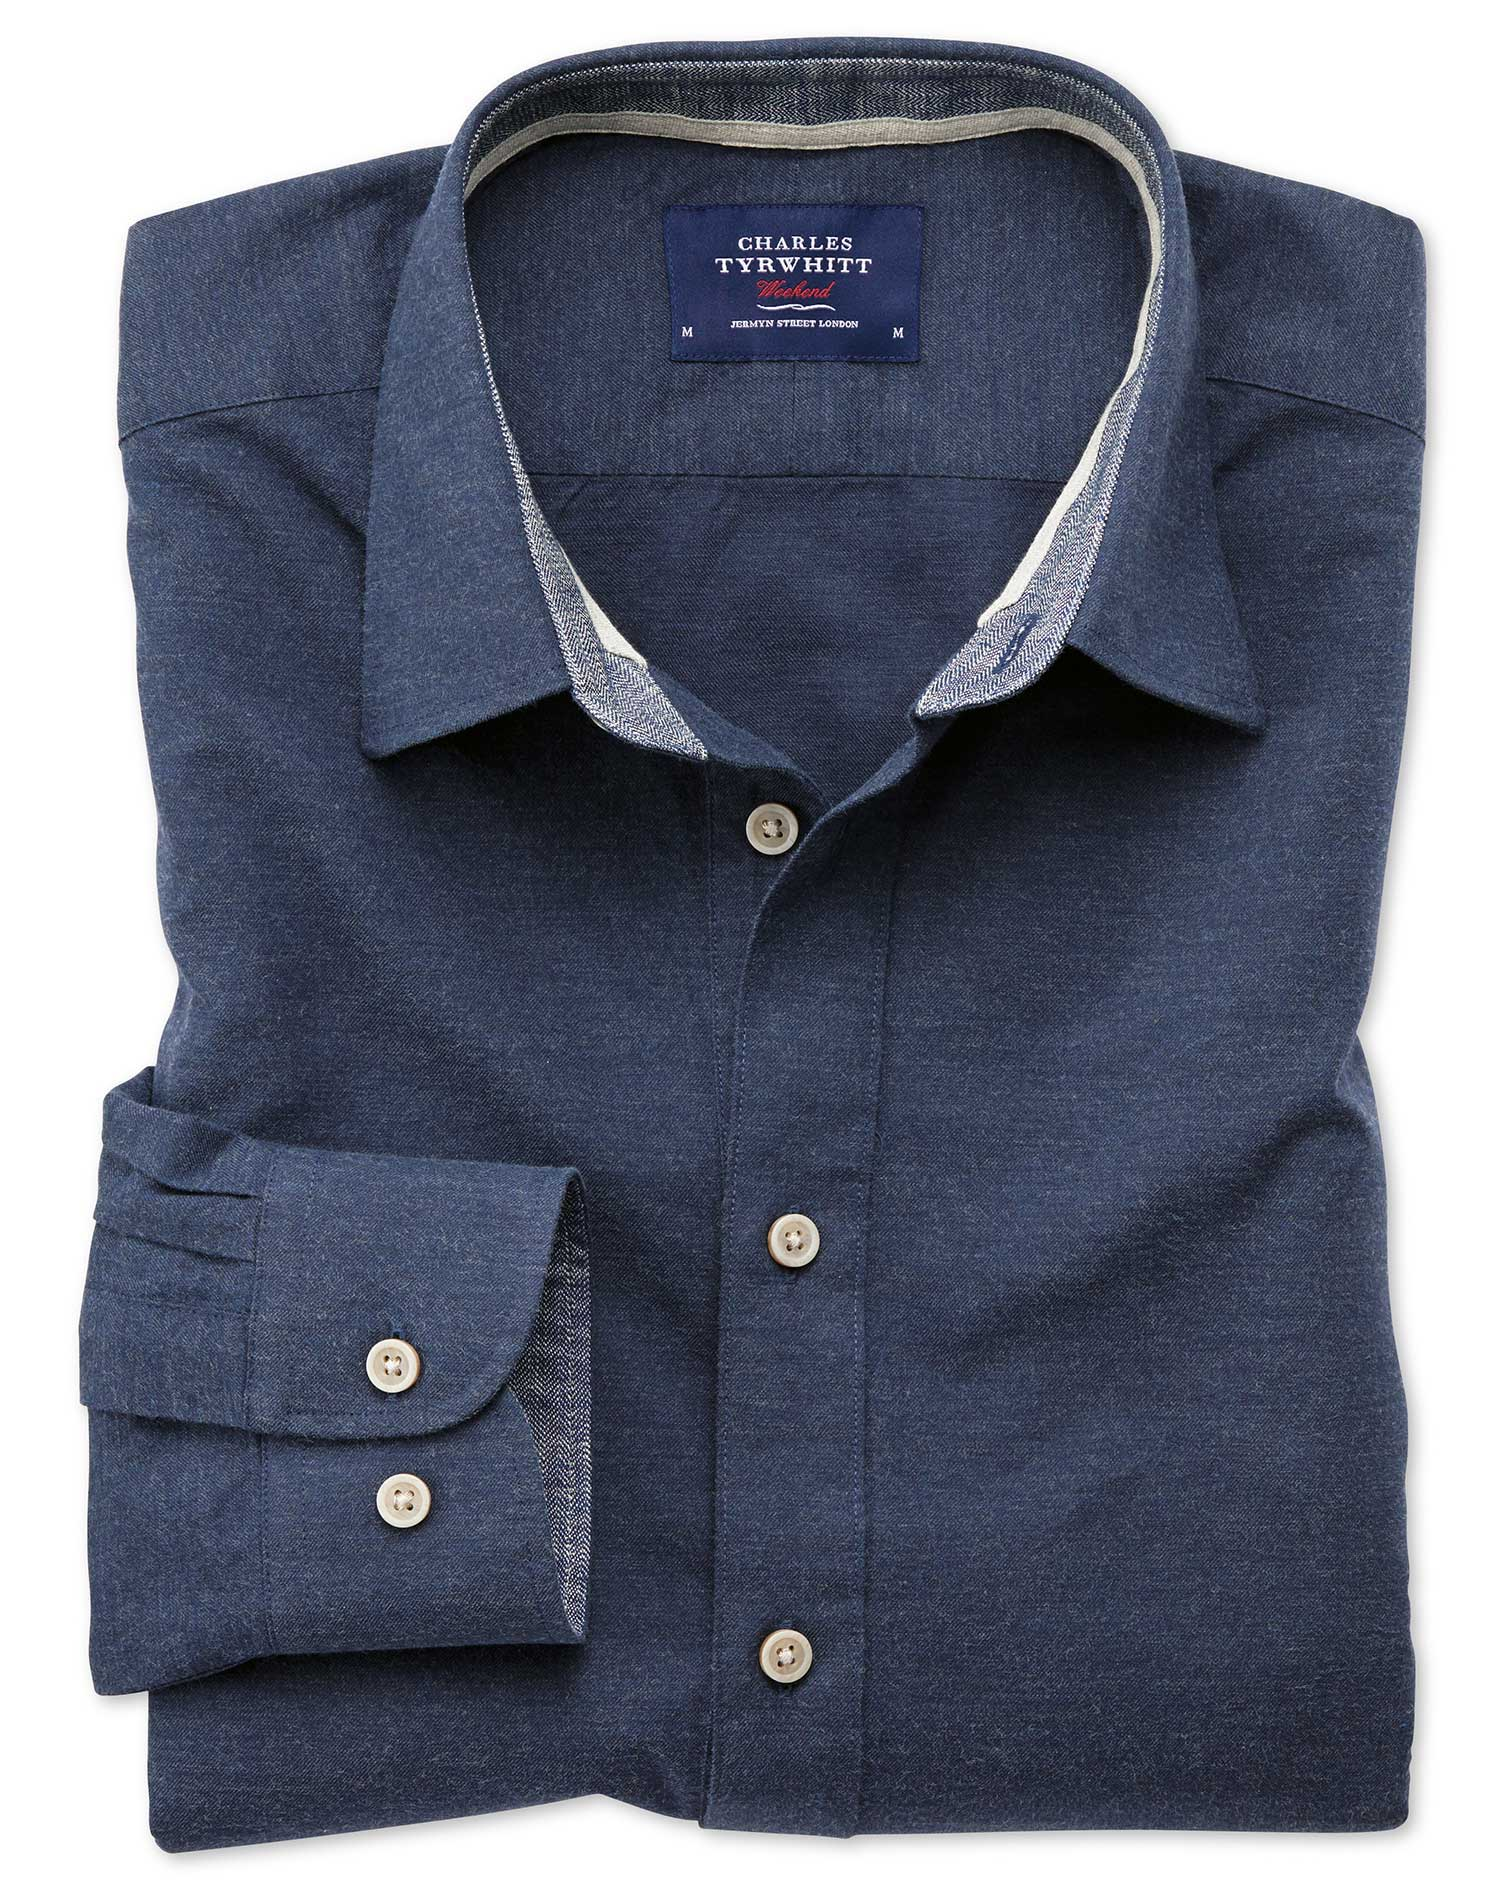 Slim Fit Popover Navy Blue Cotton Shirt Single Cuff Size XS by Charles Tyrwhitt